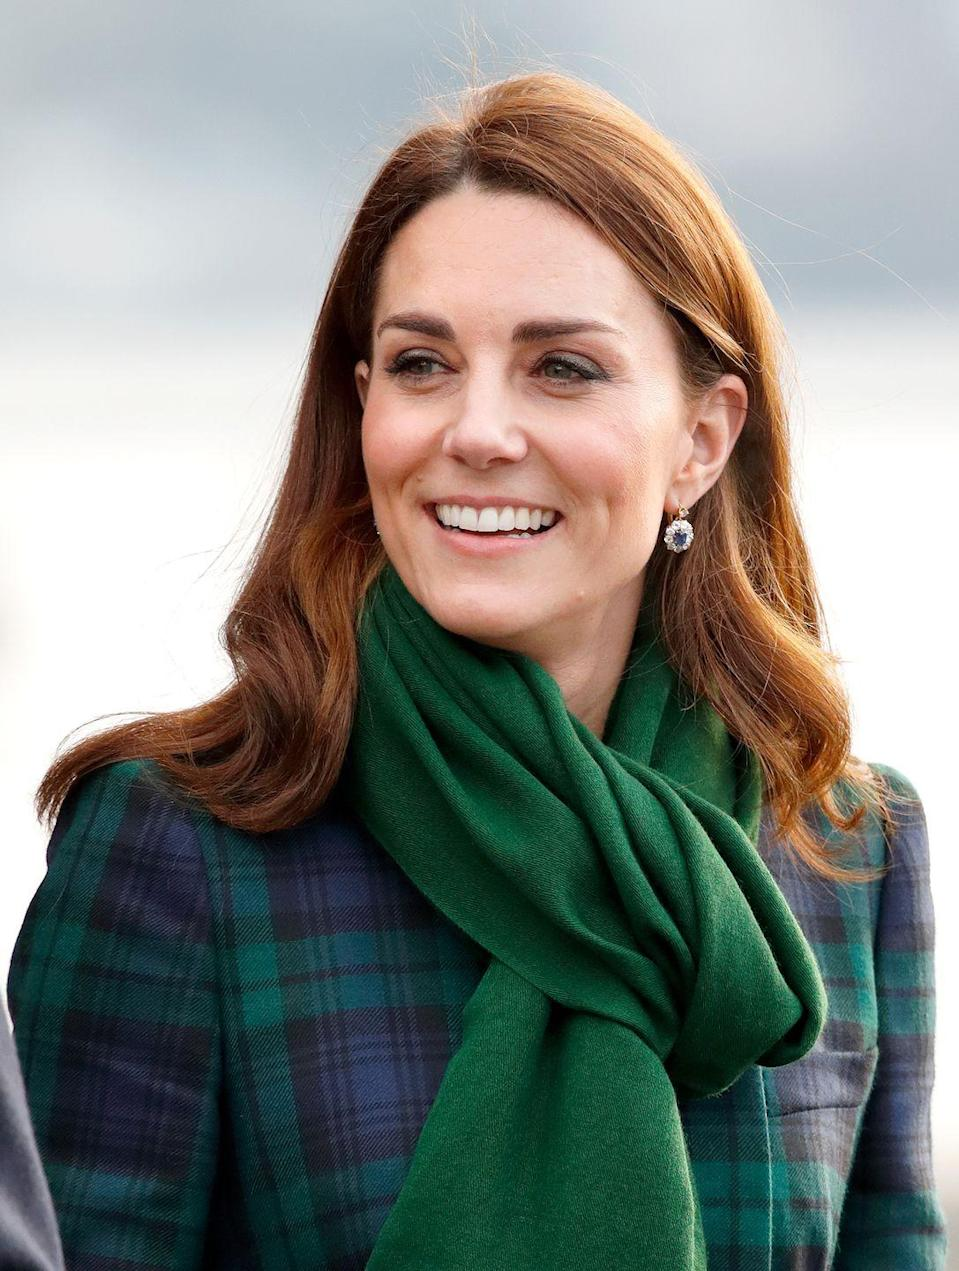 <p>For a visit to Scotland in 2019, Kate Middleton wore a pair of sapphire and diamond drop earrings that belonged to her mother-in-law Princess Diana. Prince William reportedly gifted them to his wife when they got engaged in 2010. </p>